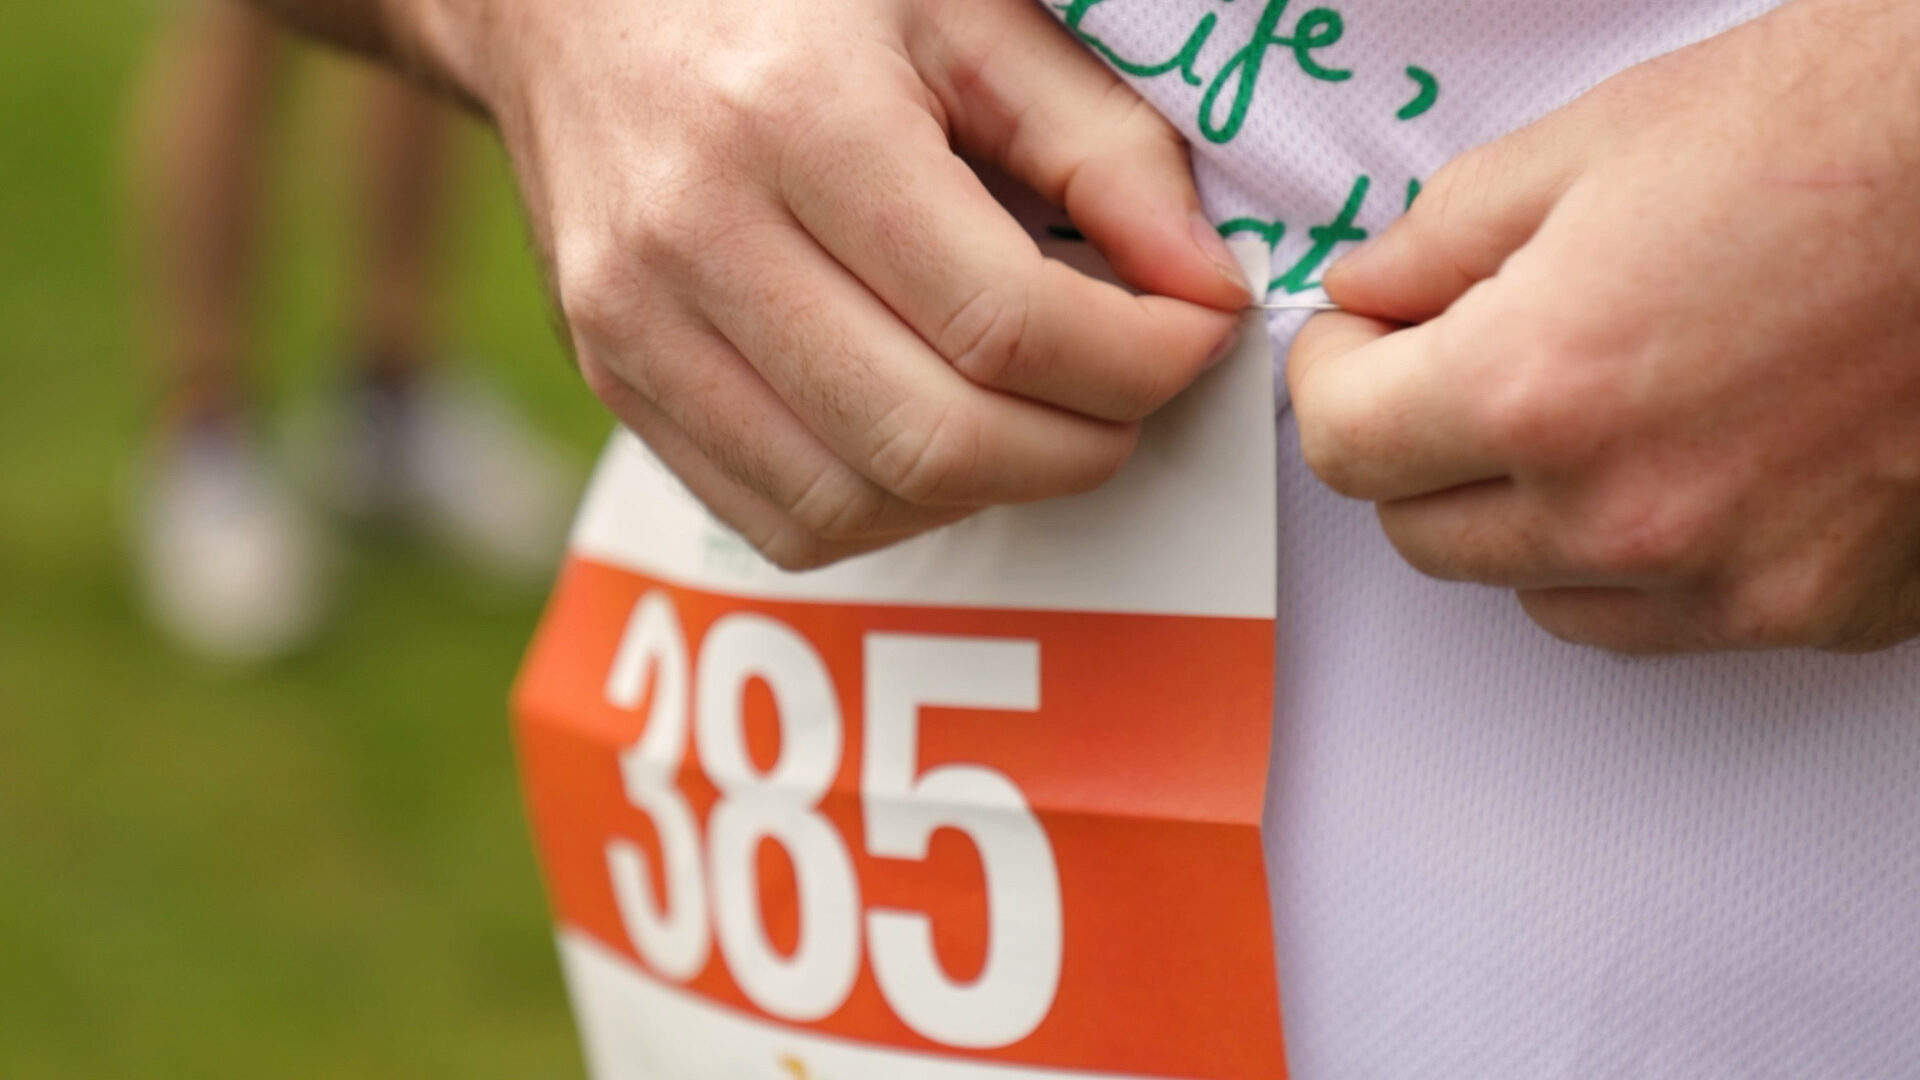 Hospice Runner pinning number to race top